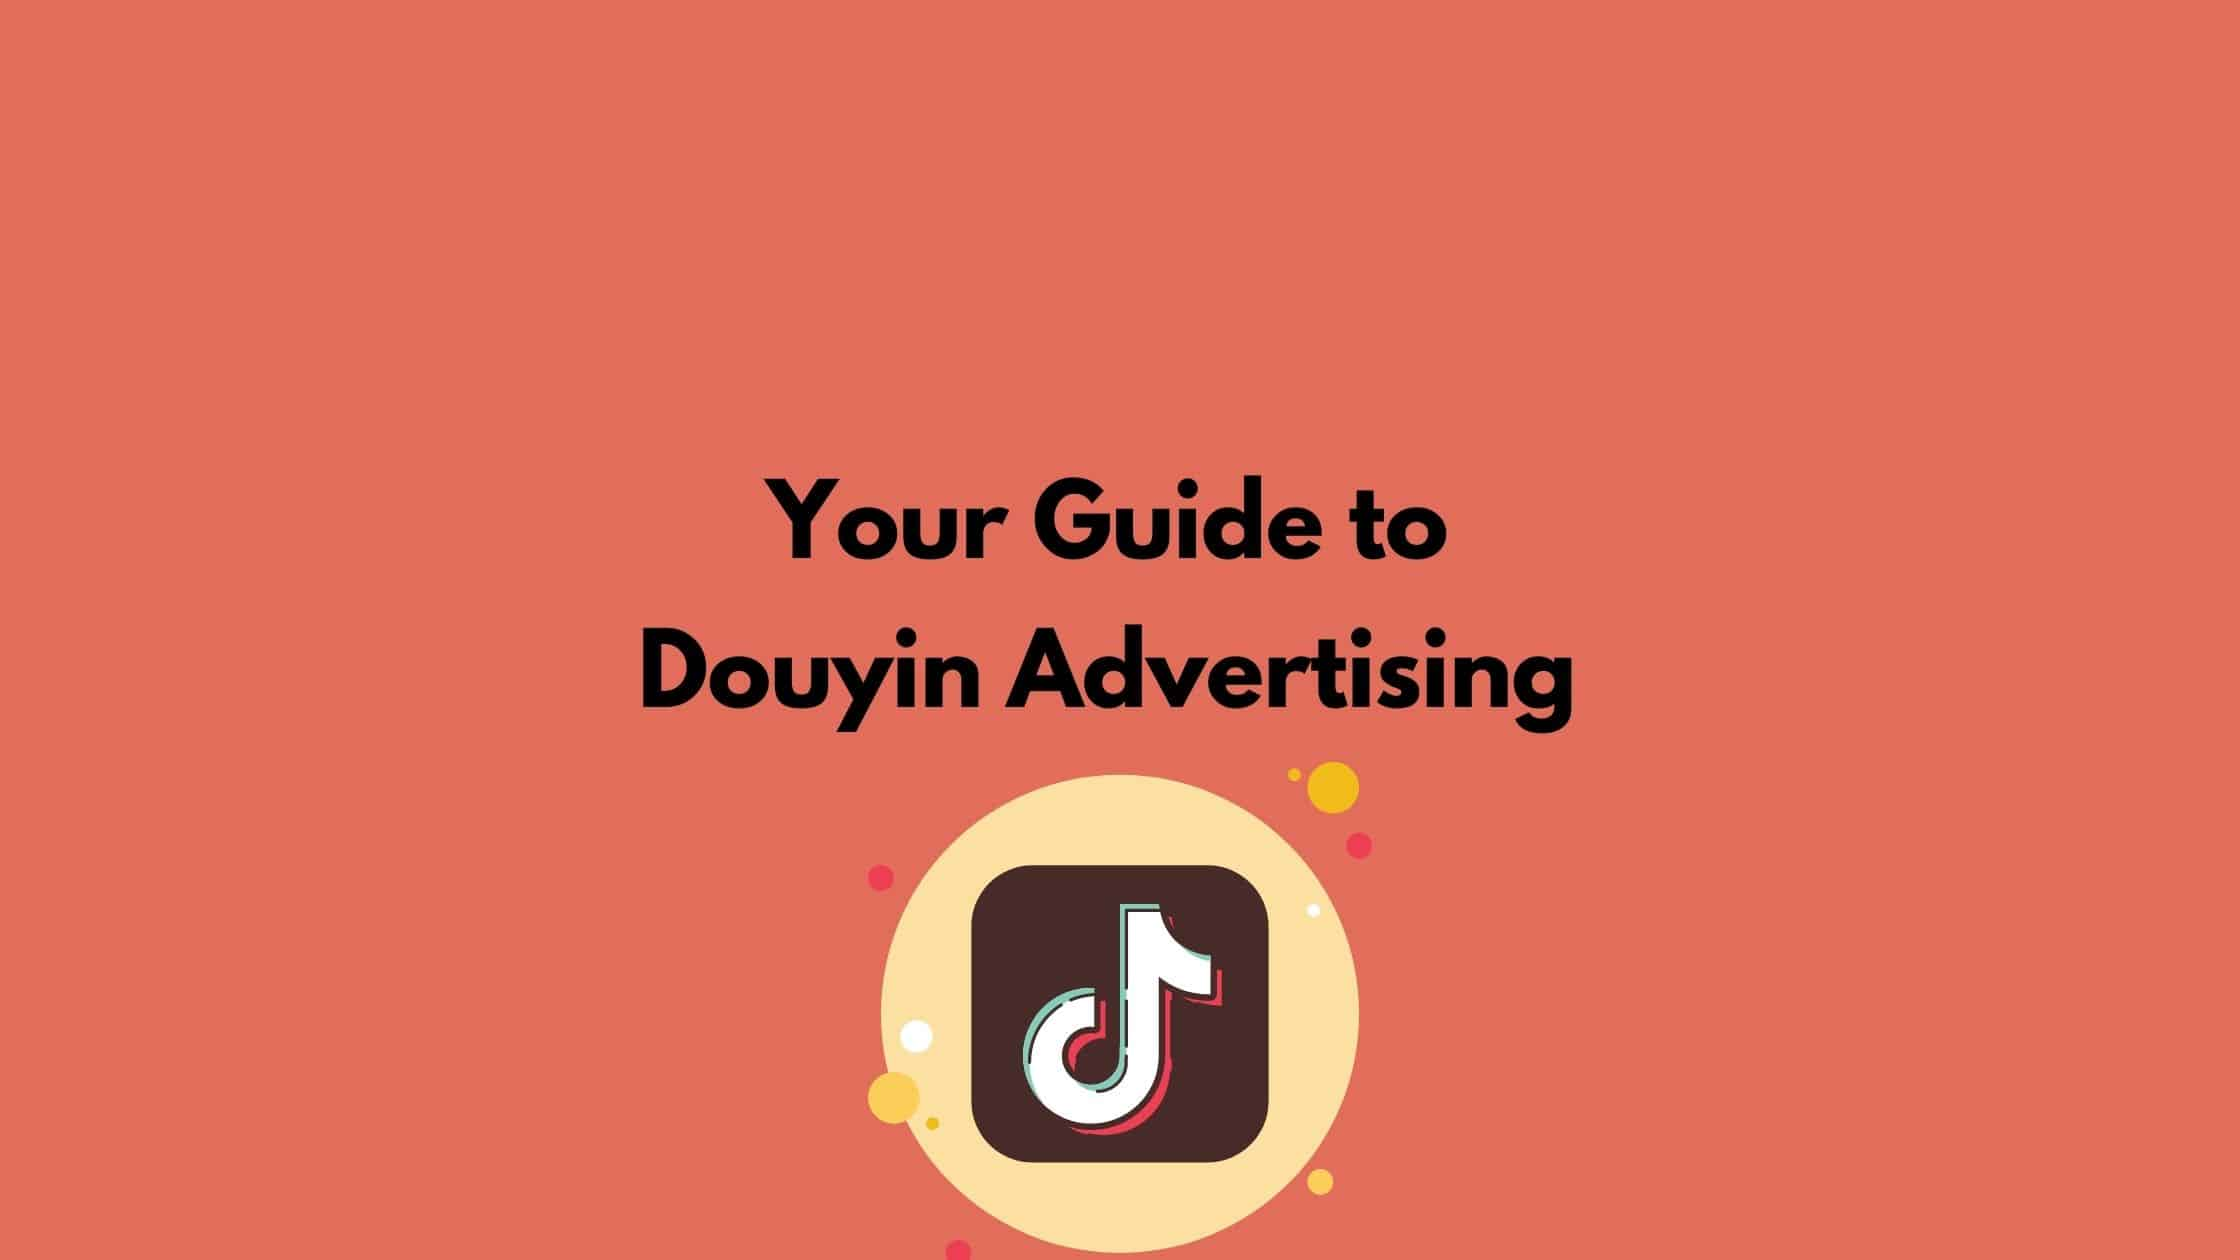 A Beginner's Guide to Advertising on Douyin